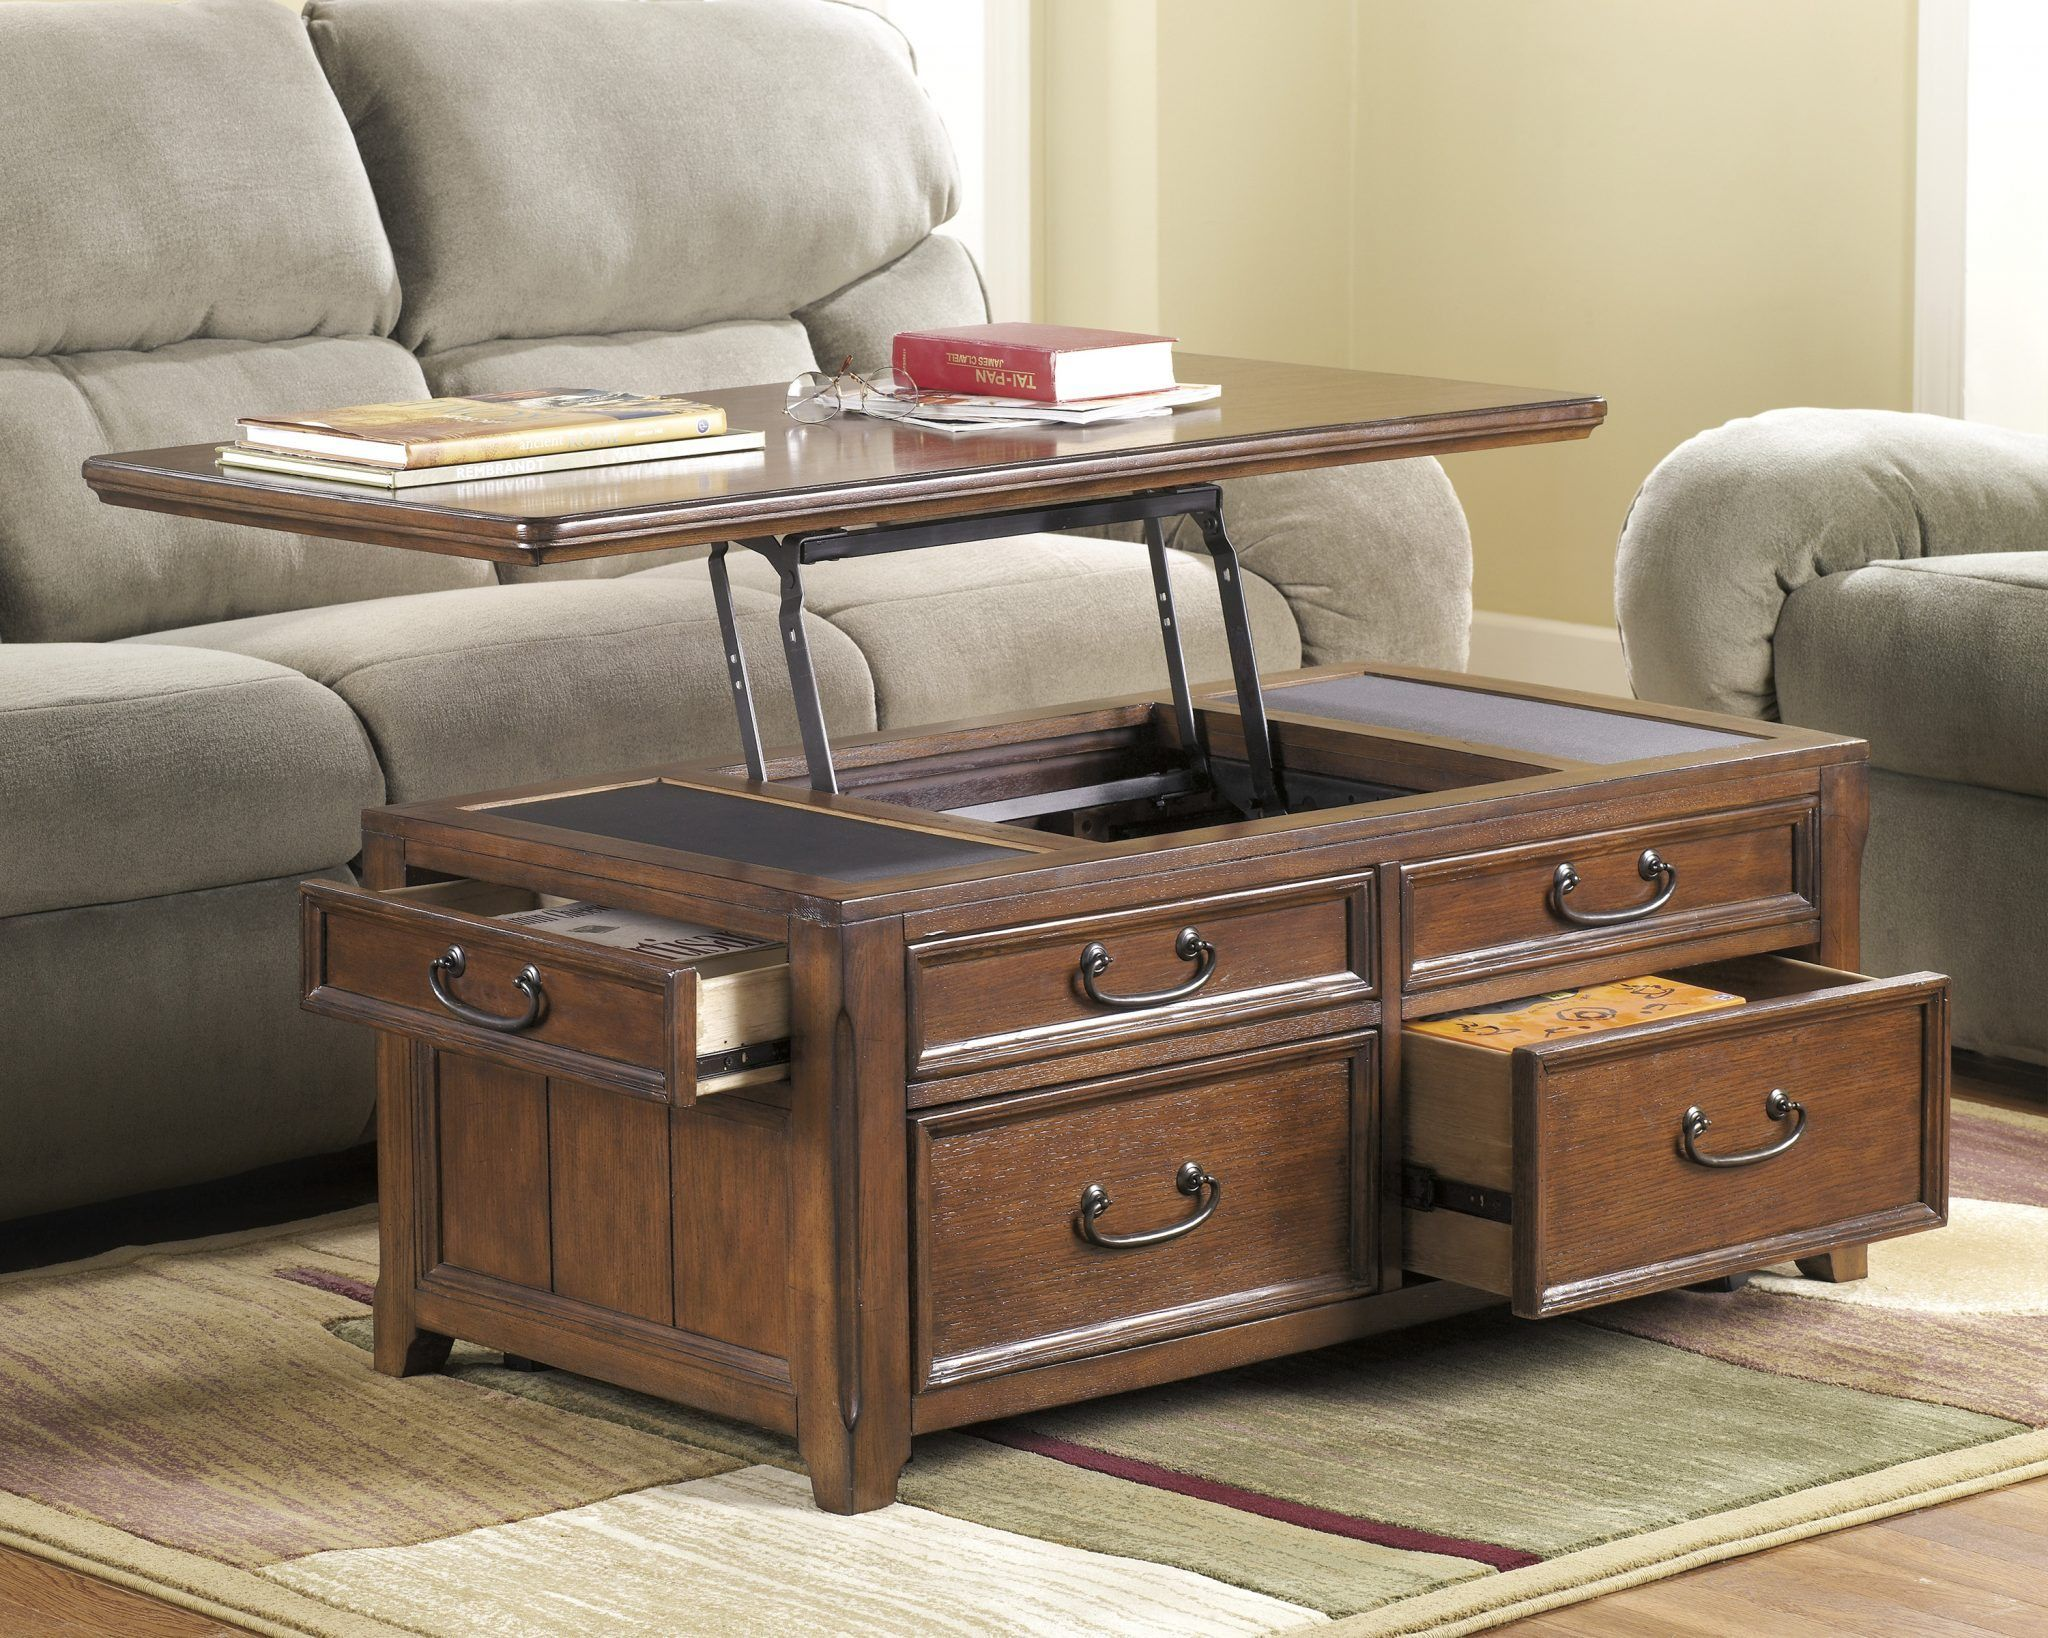 Cherry Wood Lift Top Coffee Table Download Full Size Of Wood Lift Top Coffee Table Cool Sofa Coffee Table Wood Coffee Table Square Wood Coffee Table